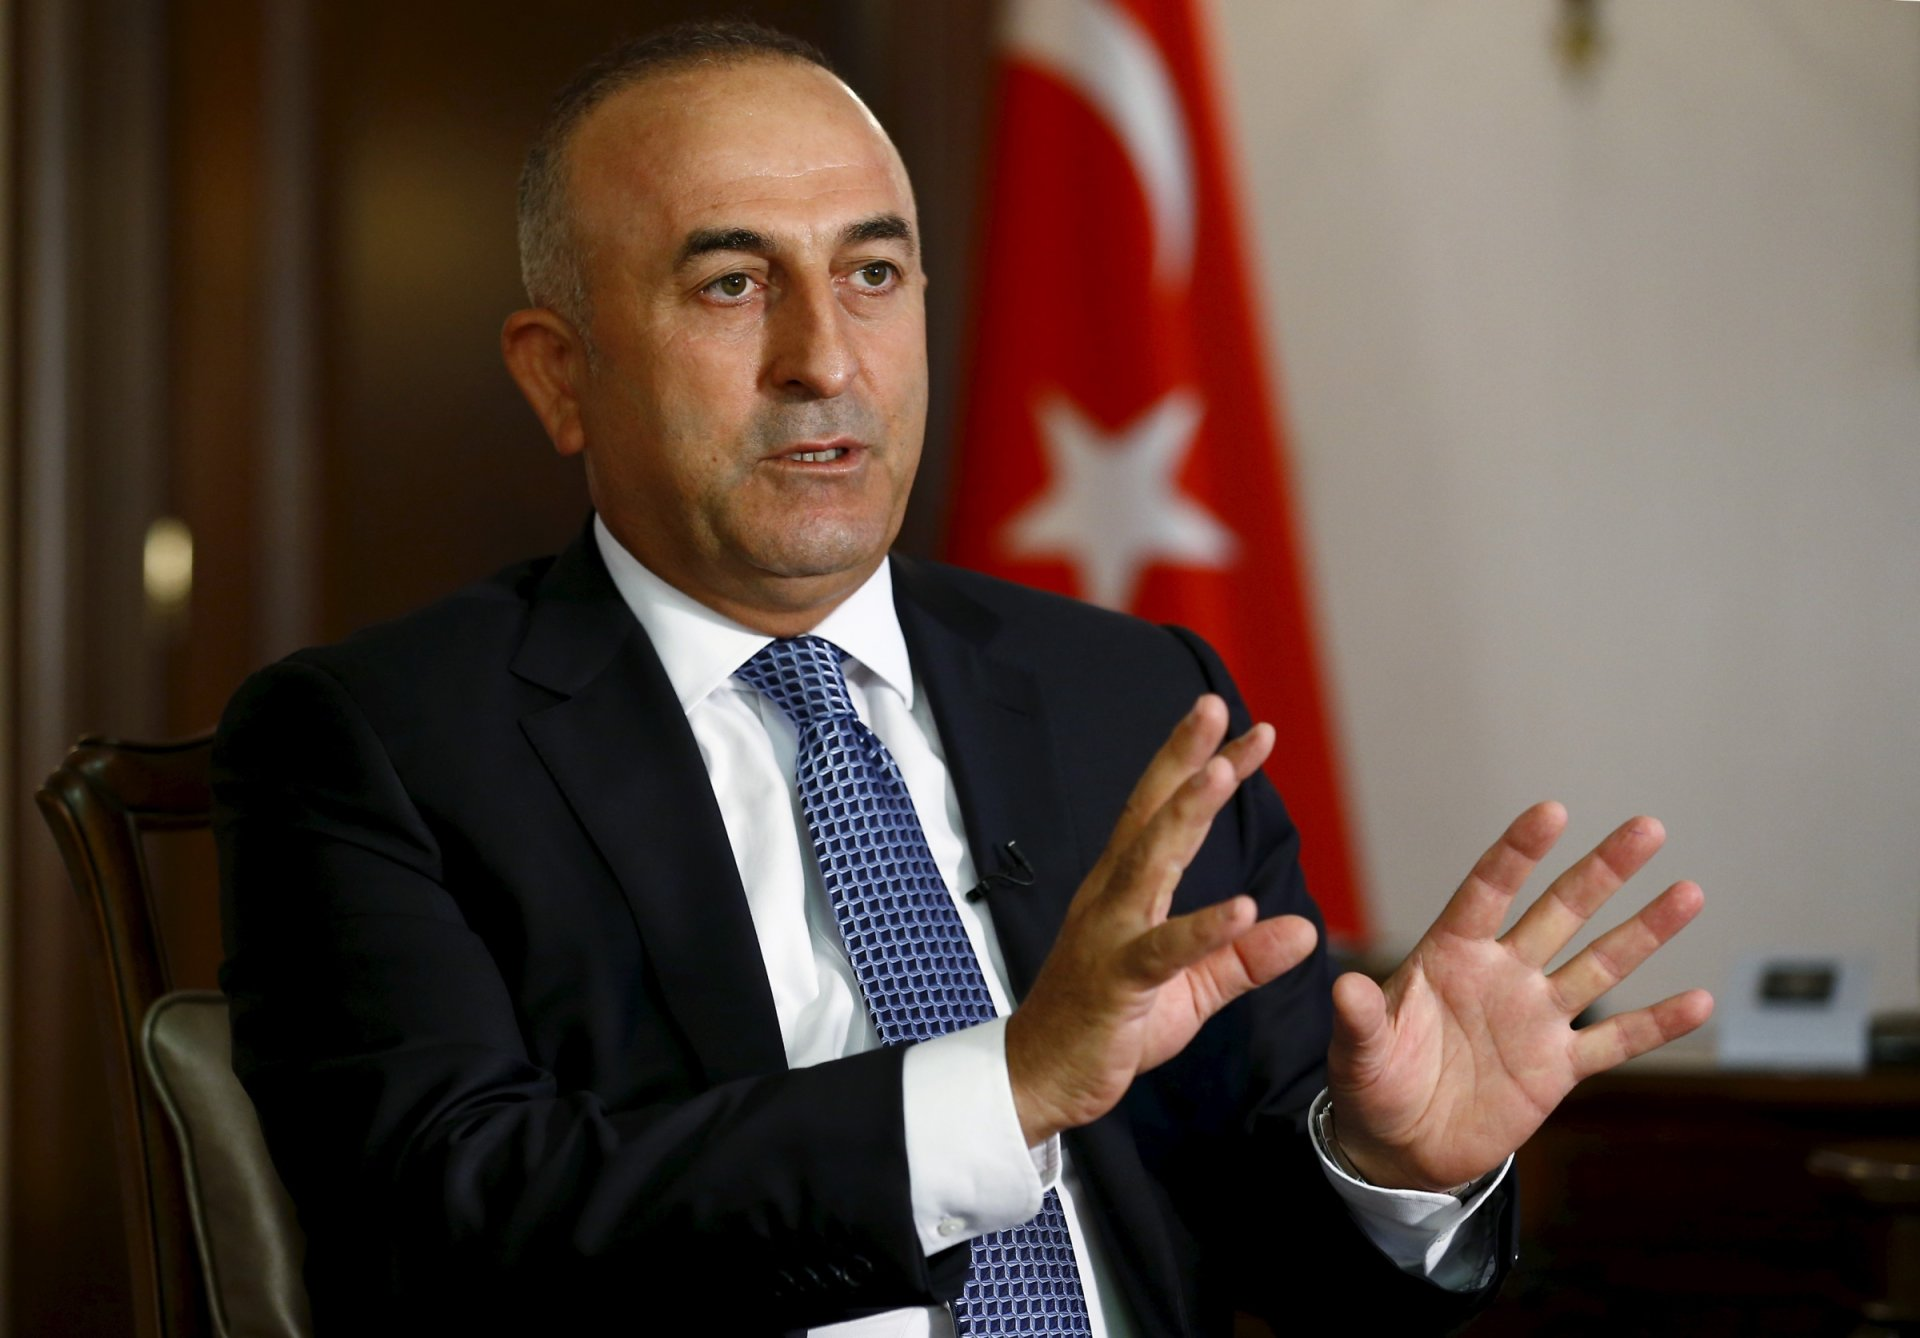 Cavusoglu: Akinci is a dishonest politician